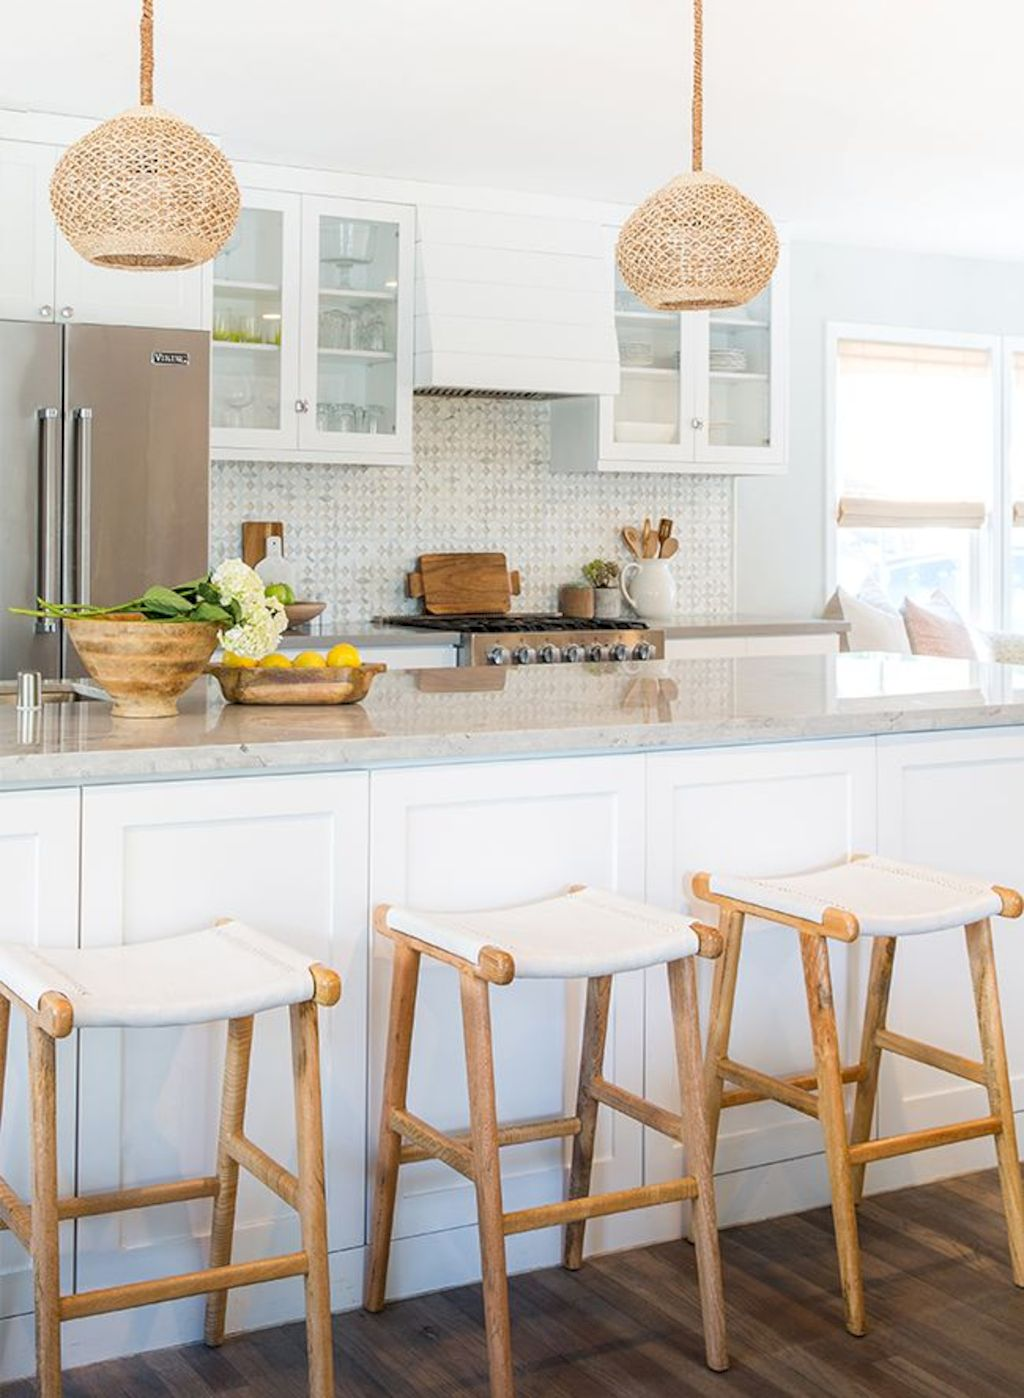 Beach home dining room style giving a fresh vibe among inviting recreational interior update Image 14